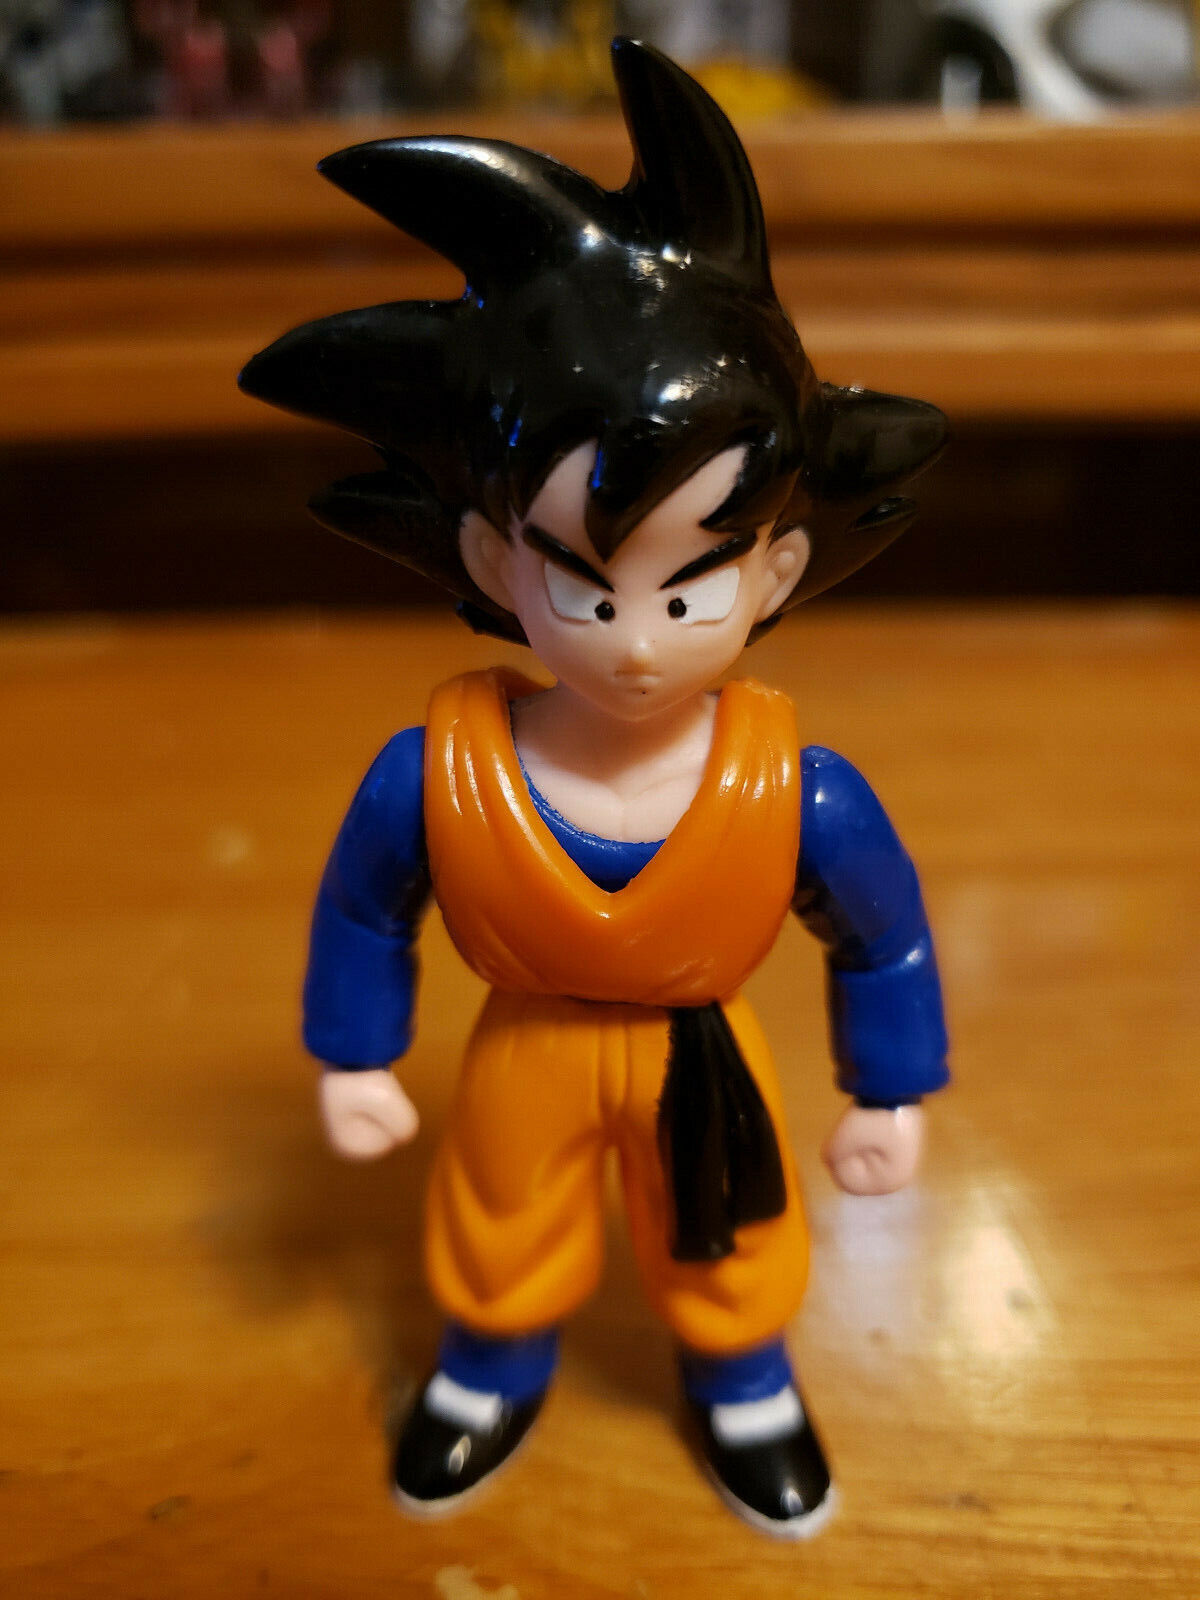 Character:Son Goten Vol 15:BANDAI Dragonball Z  and Dragon Ball GT super battle collection AB Toys & Irwin